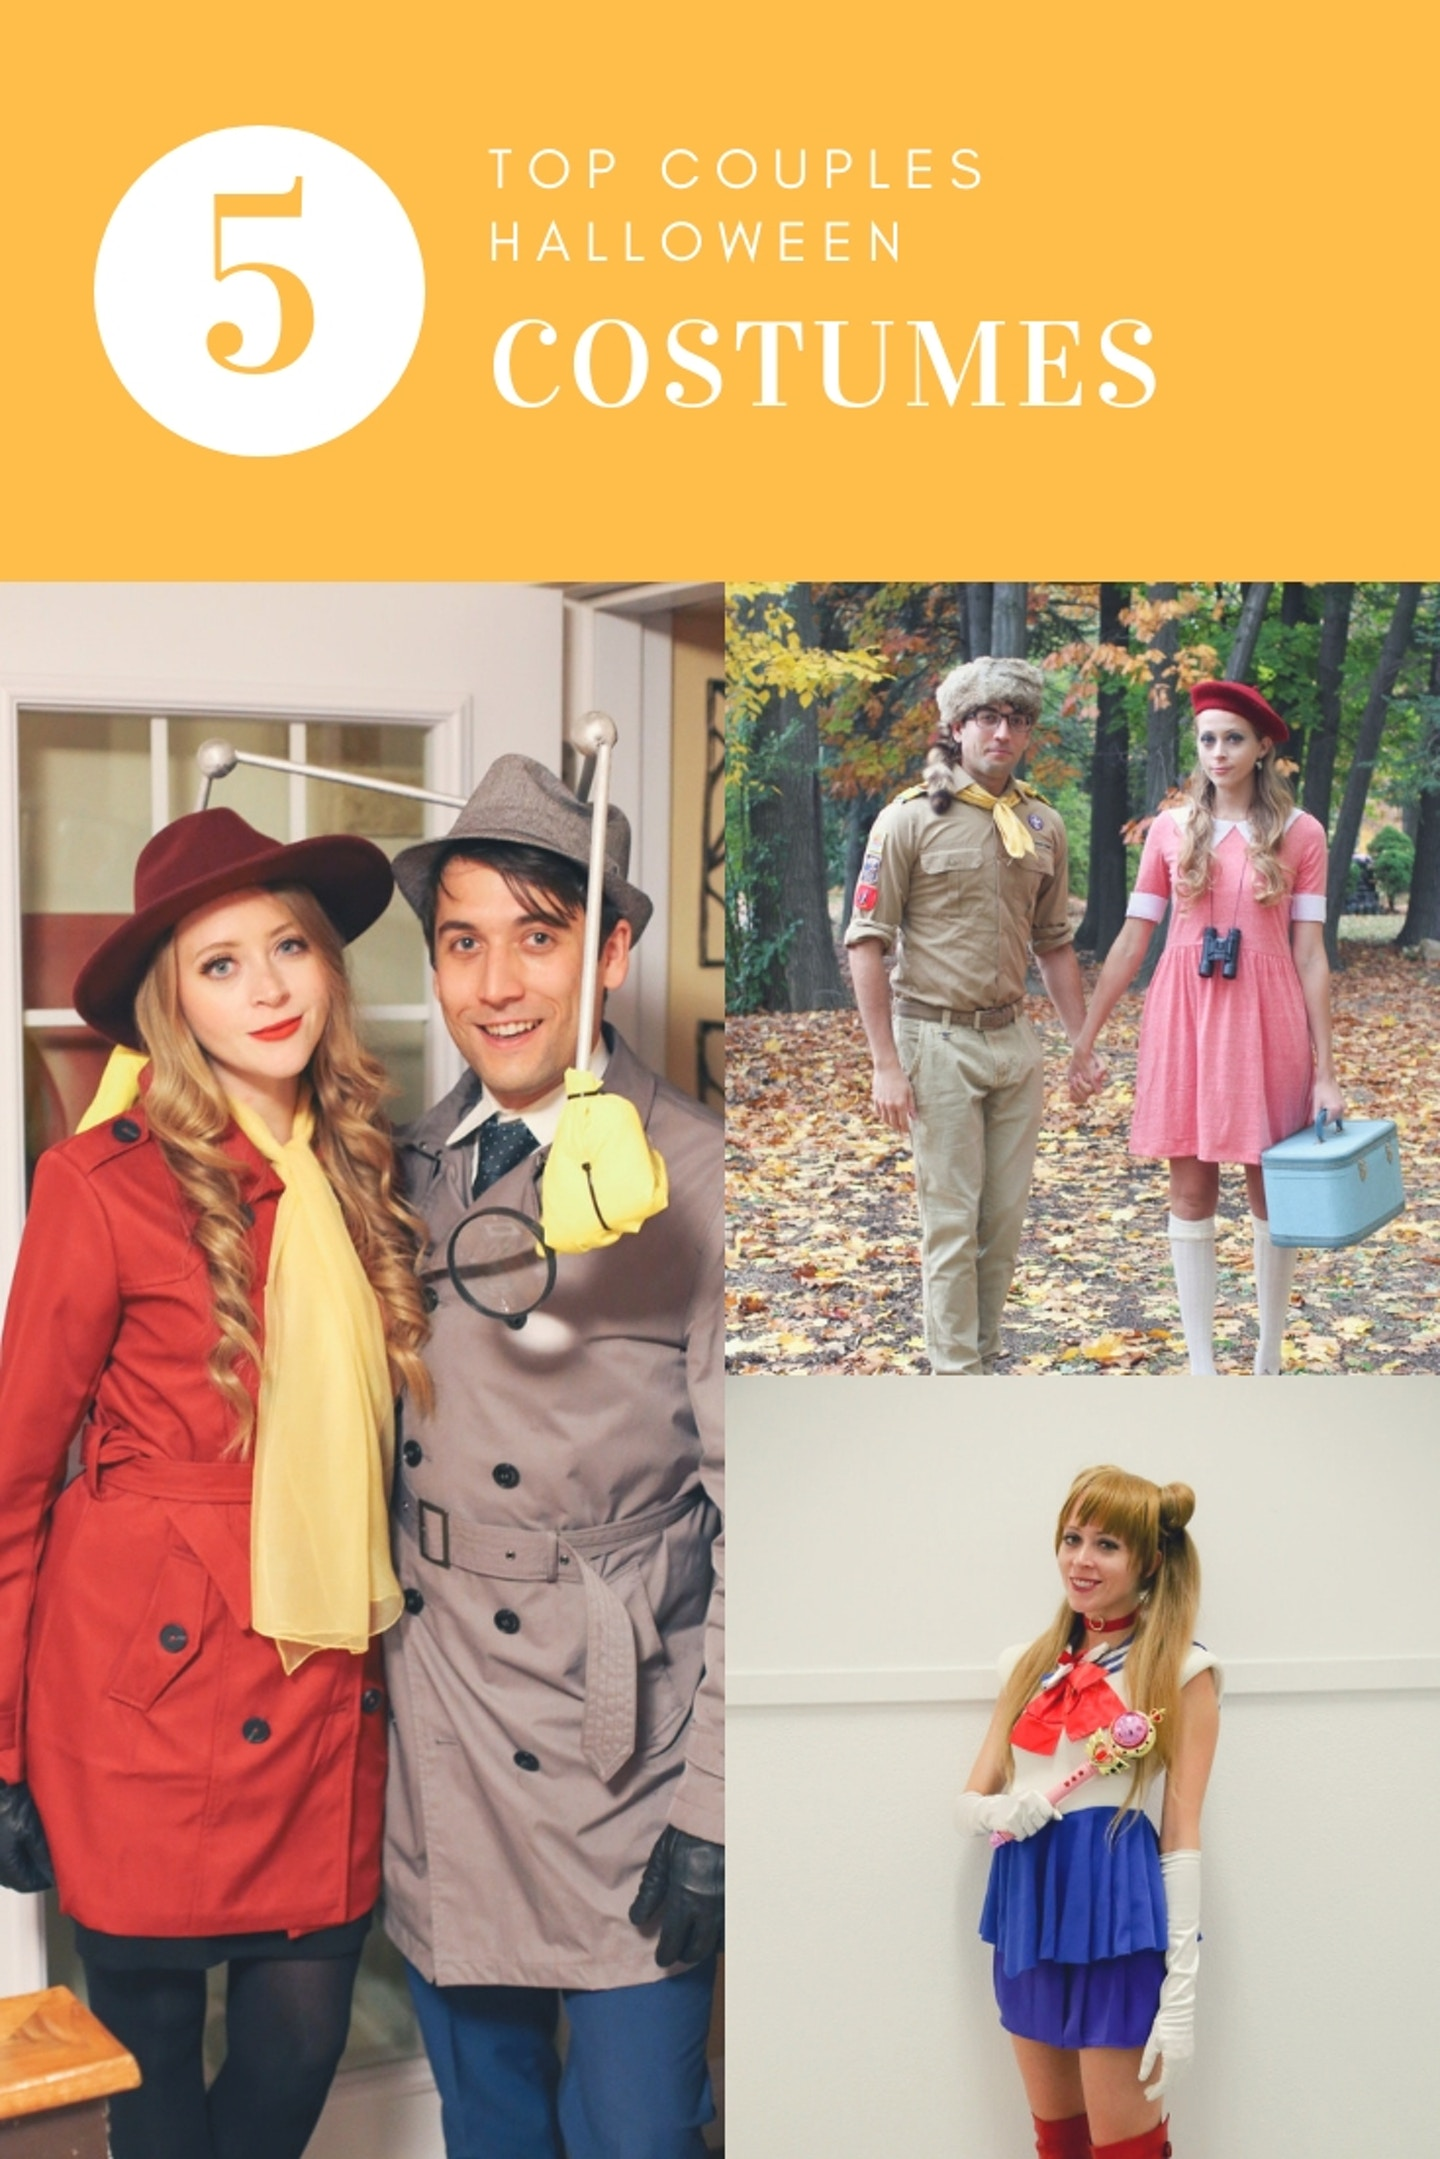 Top 5 Couples Halloween Costume Ideas: From Inspector Gadget and Carmen Sandiego to Moonrise Kingdom's Sam and Suzy, this blog post shares 5 unique couples Halloween costume ideas!